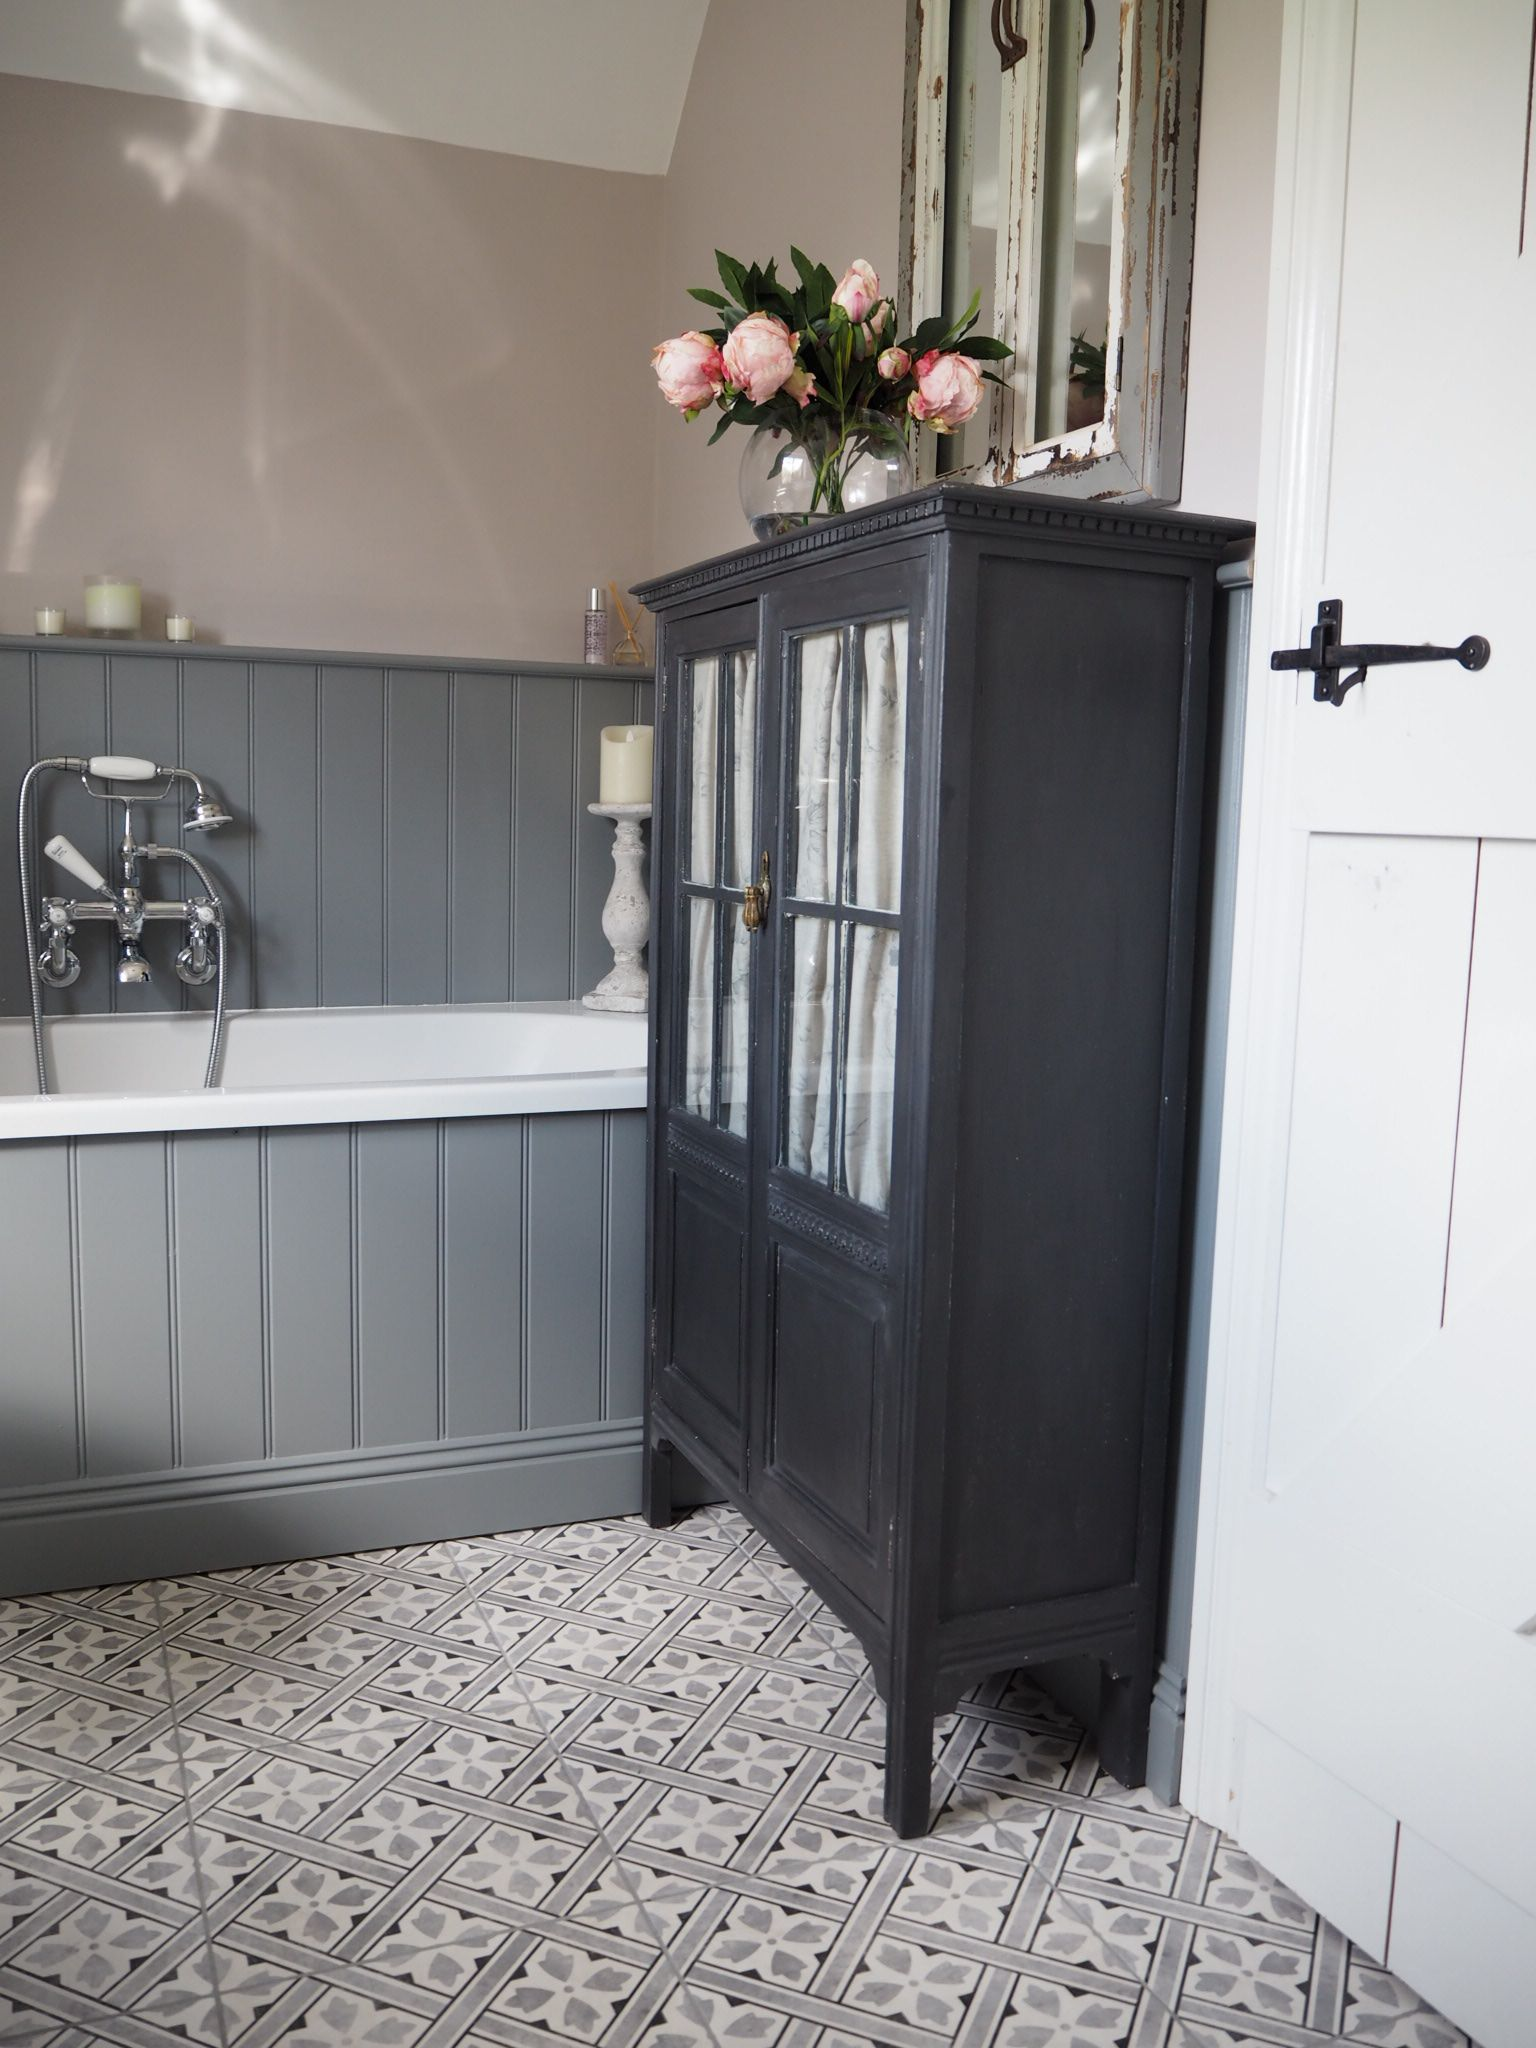 farrow and ball peignoir and plummet up cycled cupboard painted in rustoleum azienka. Black Bedroom Furniture Sets. Home Design Ideas